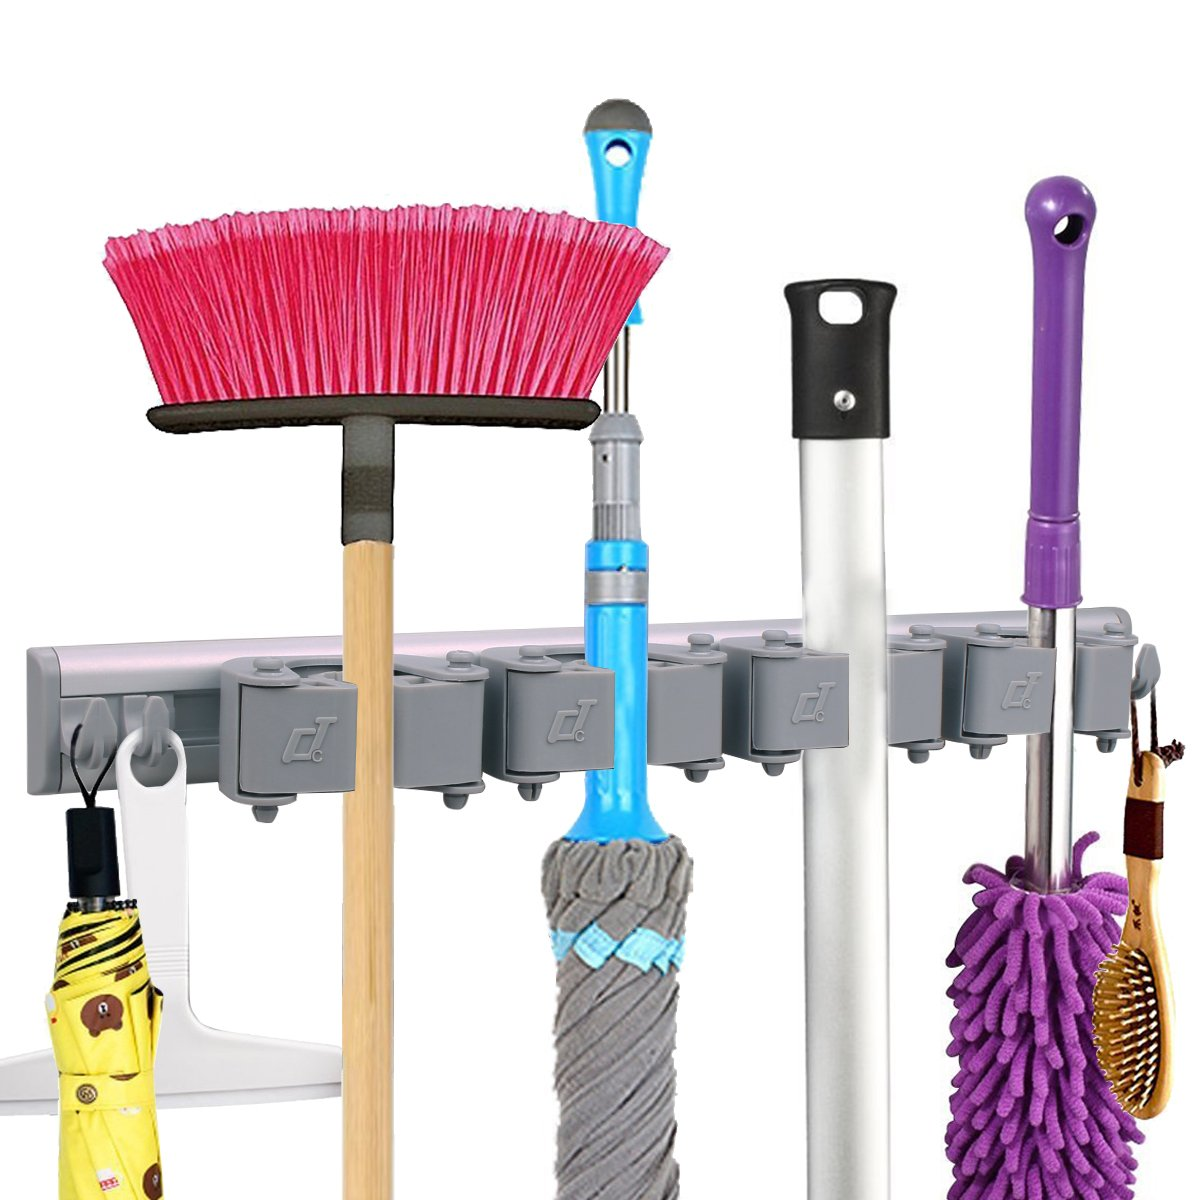 Mop Broom Holder Wall Mounted Hooks, Free Combination Rubber Grip Pole Holder, Garden Tool Rack, Storage Organization Hangers, Kitchen Hanging Garage Utility Tool (with 4 Sliding Grippers and 4 Hooks)